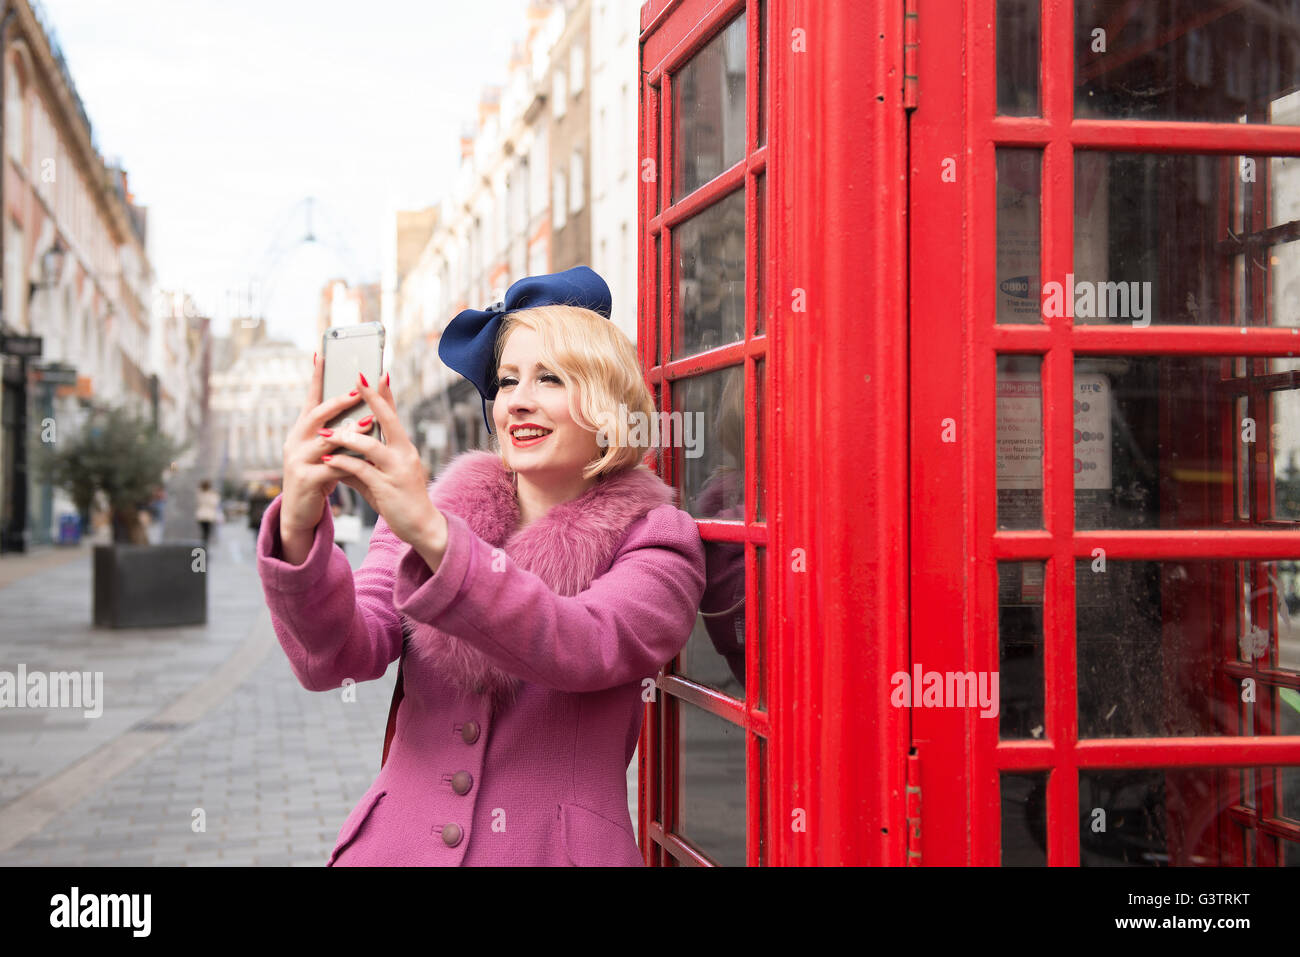 A stylish young woman dressed in 1930s style clothing taking a selfie outside a traditional telephone kiosk on a - Stock Image